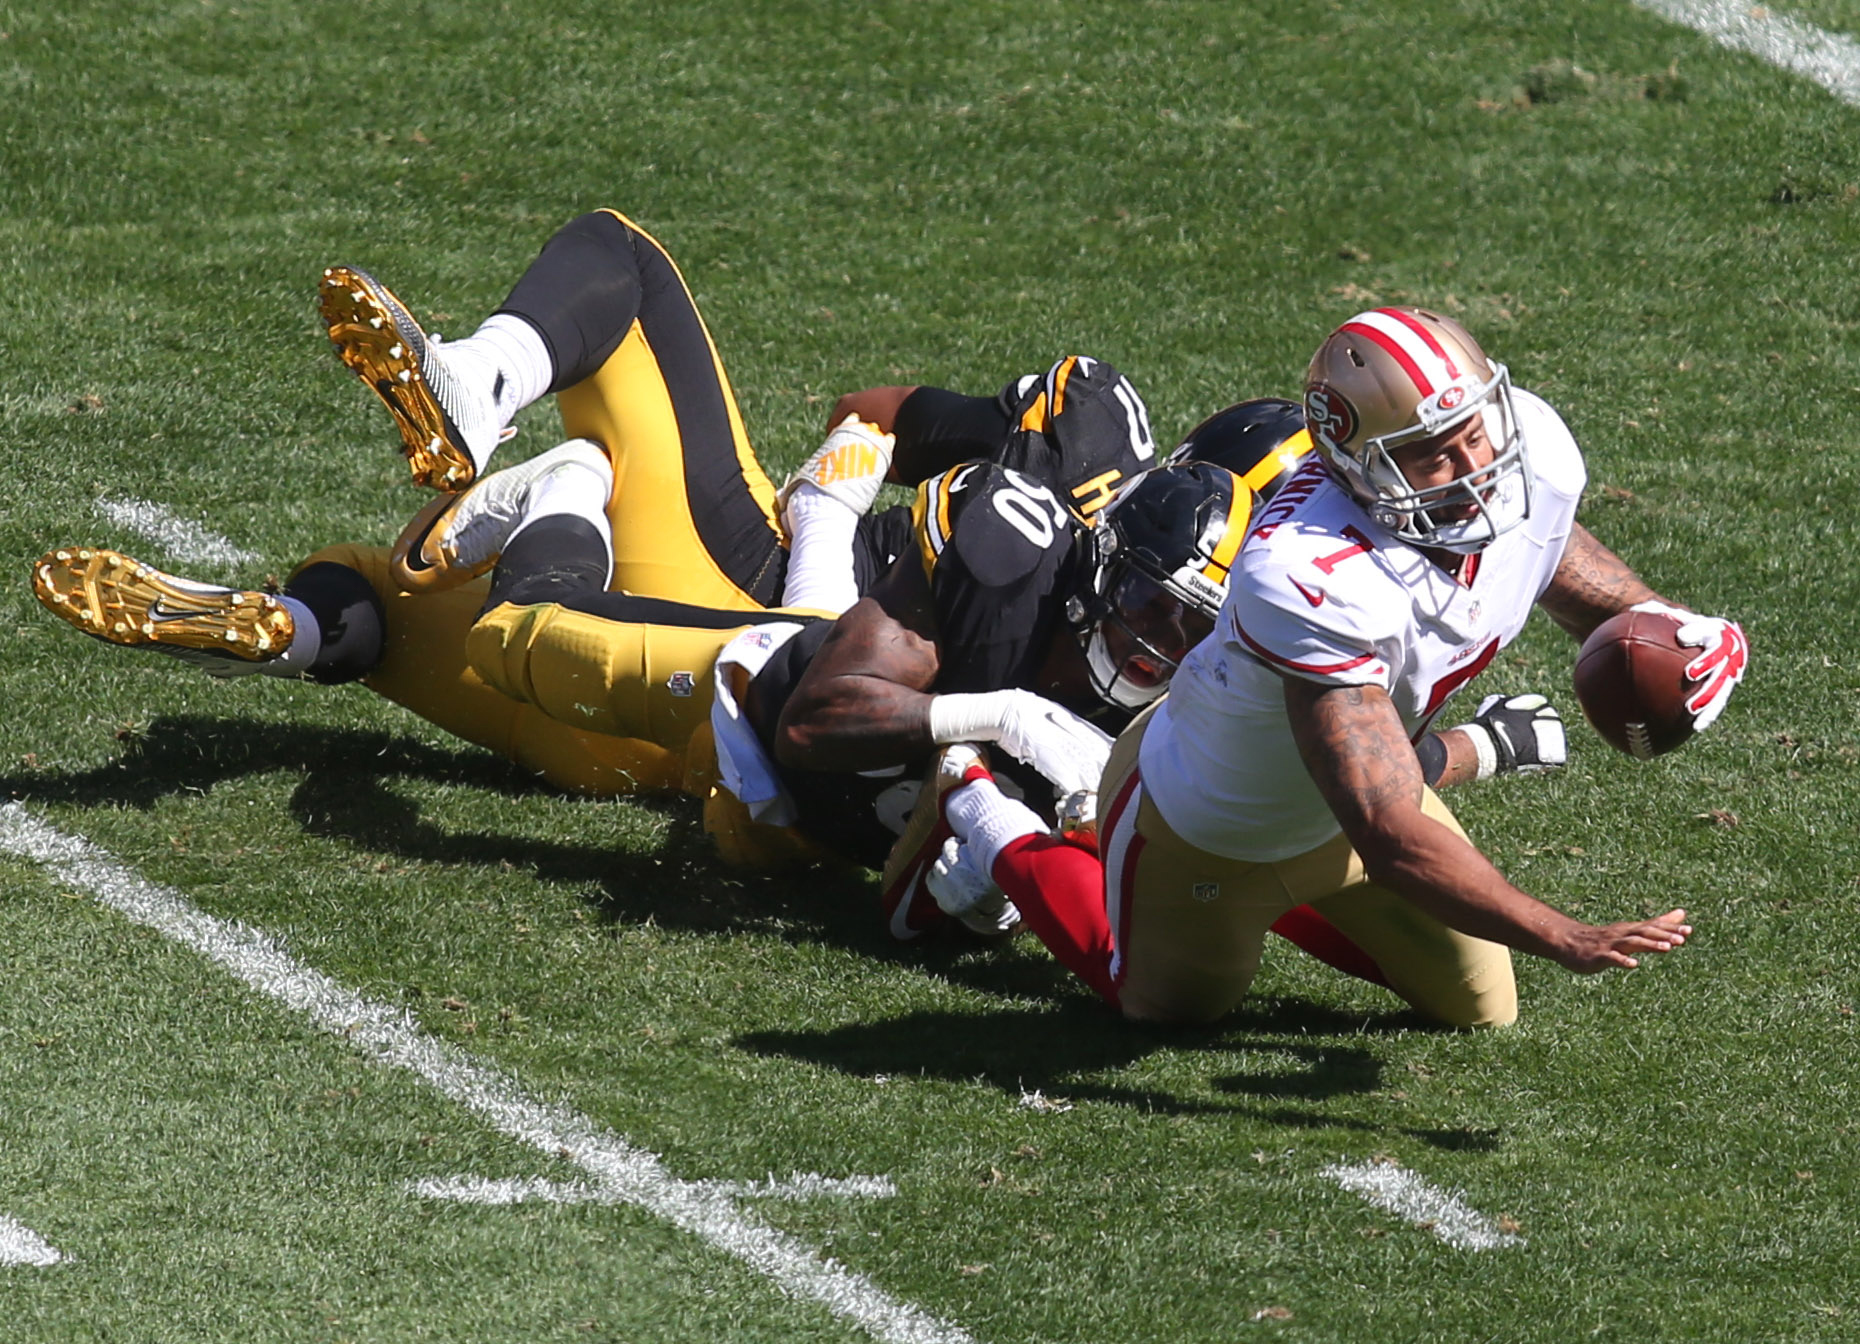 Ryan Shazier was Colin Kaepernick's kryptonite in the Steelers' 43-18 win over the 49ers.